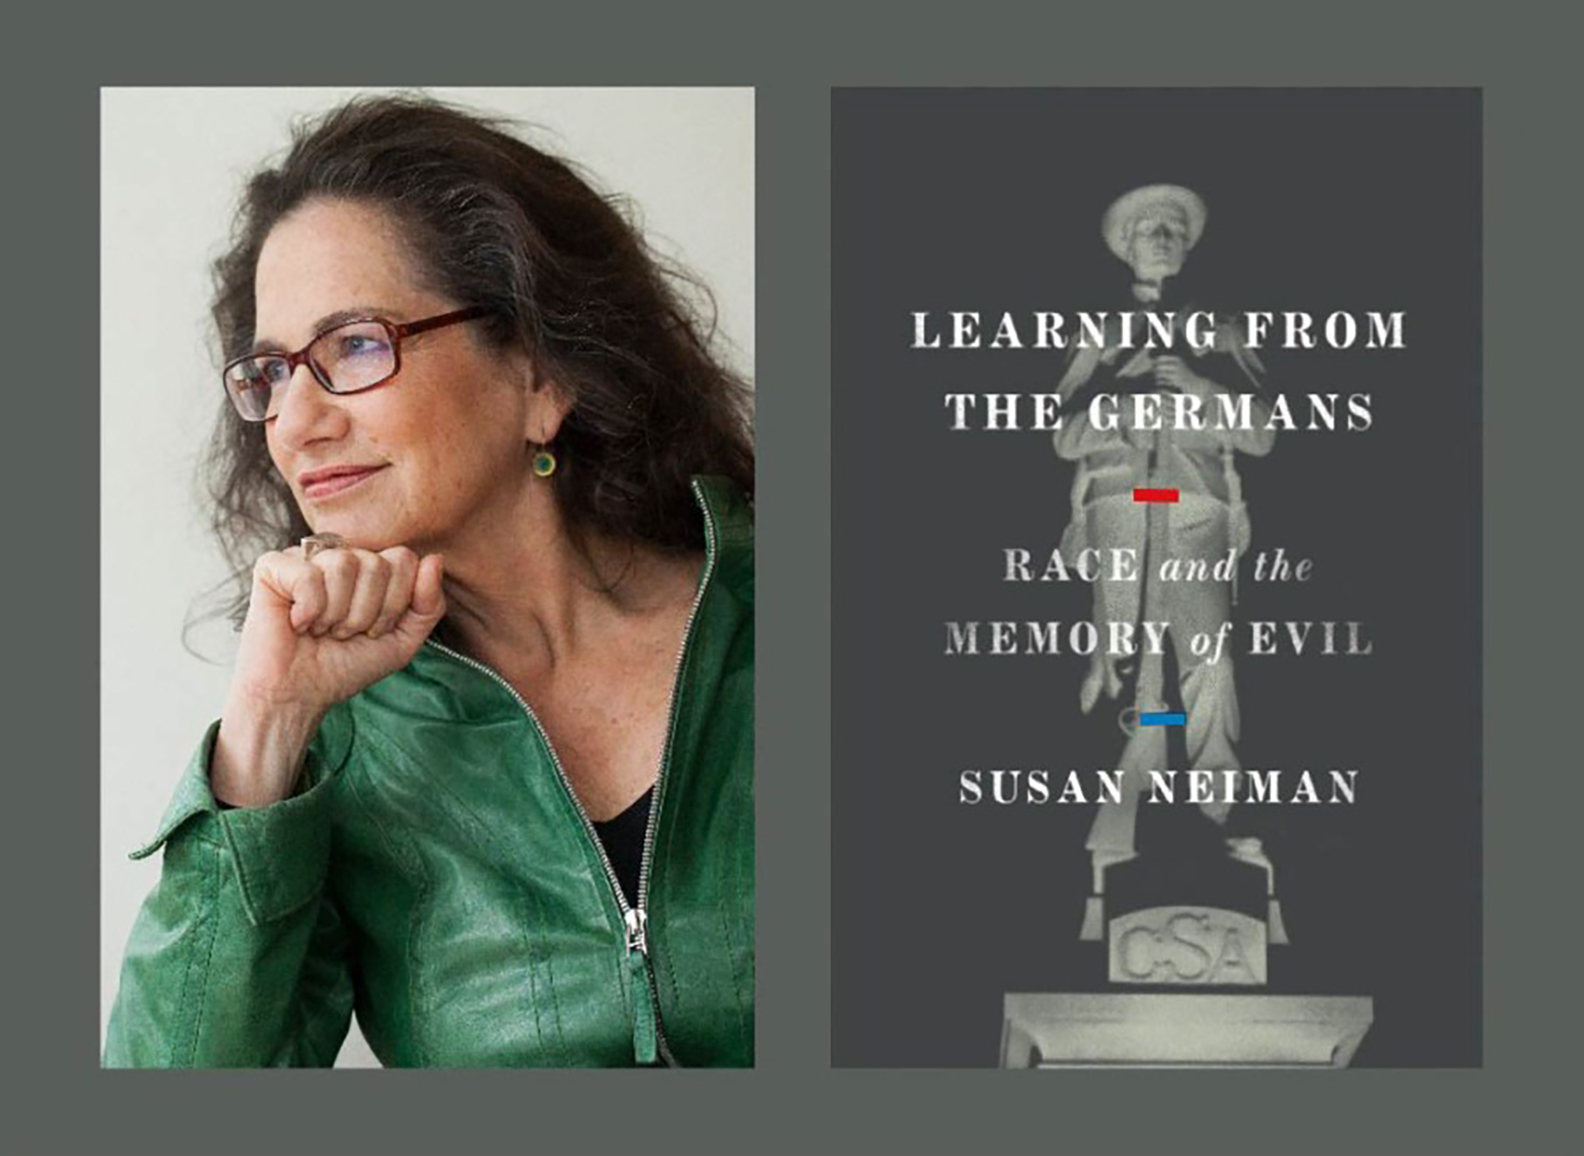 Susan Neiman's event announcement